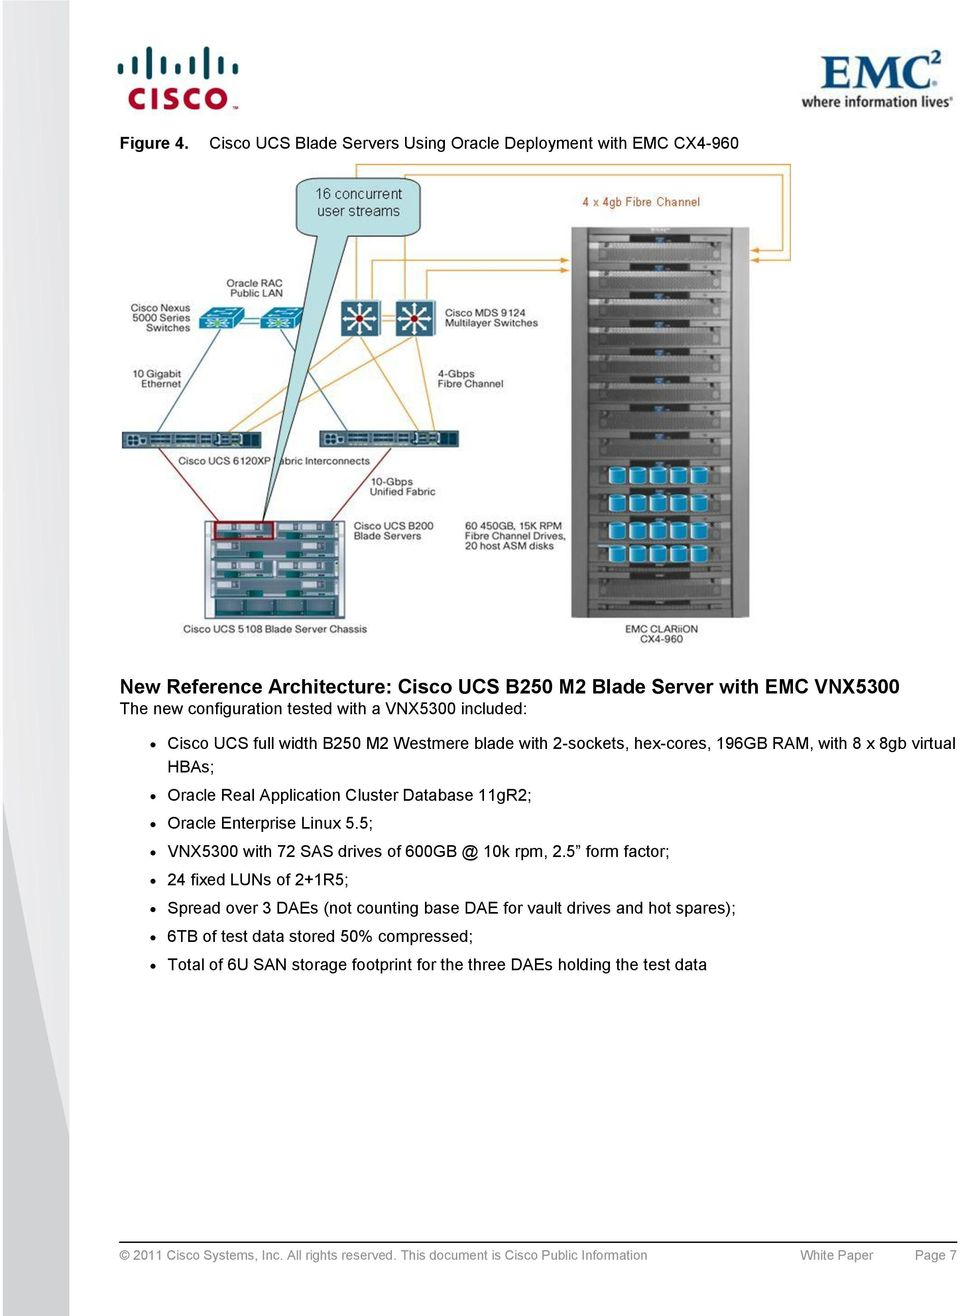 included: Cisco UCS full width B250 M2 Westmere blade with 2-sockets, hex-cores, 196GB RAM, with 8 x 8gb virtual HBAs; Oracle Real Application Cluster Database 11gR2; Oracle Enterprise Linux 5.